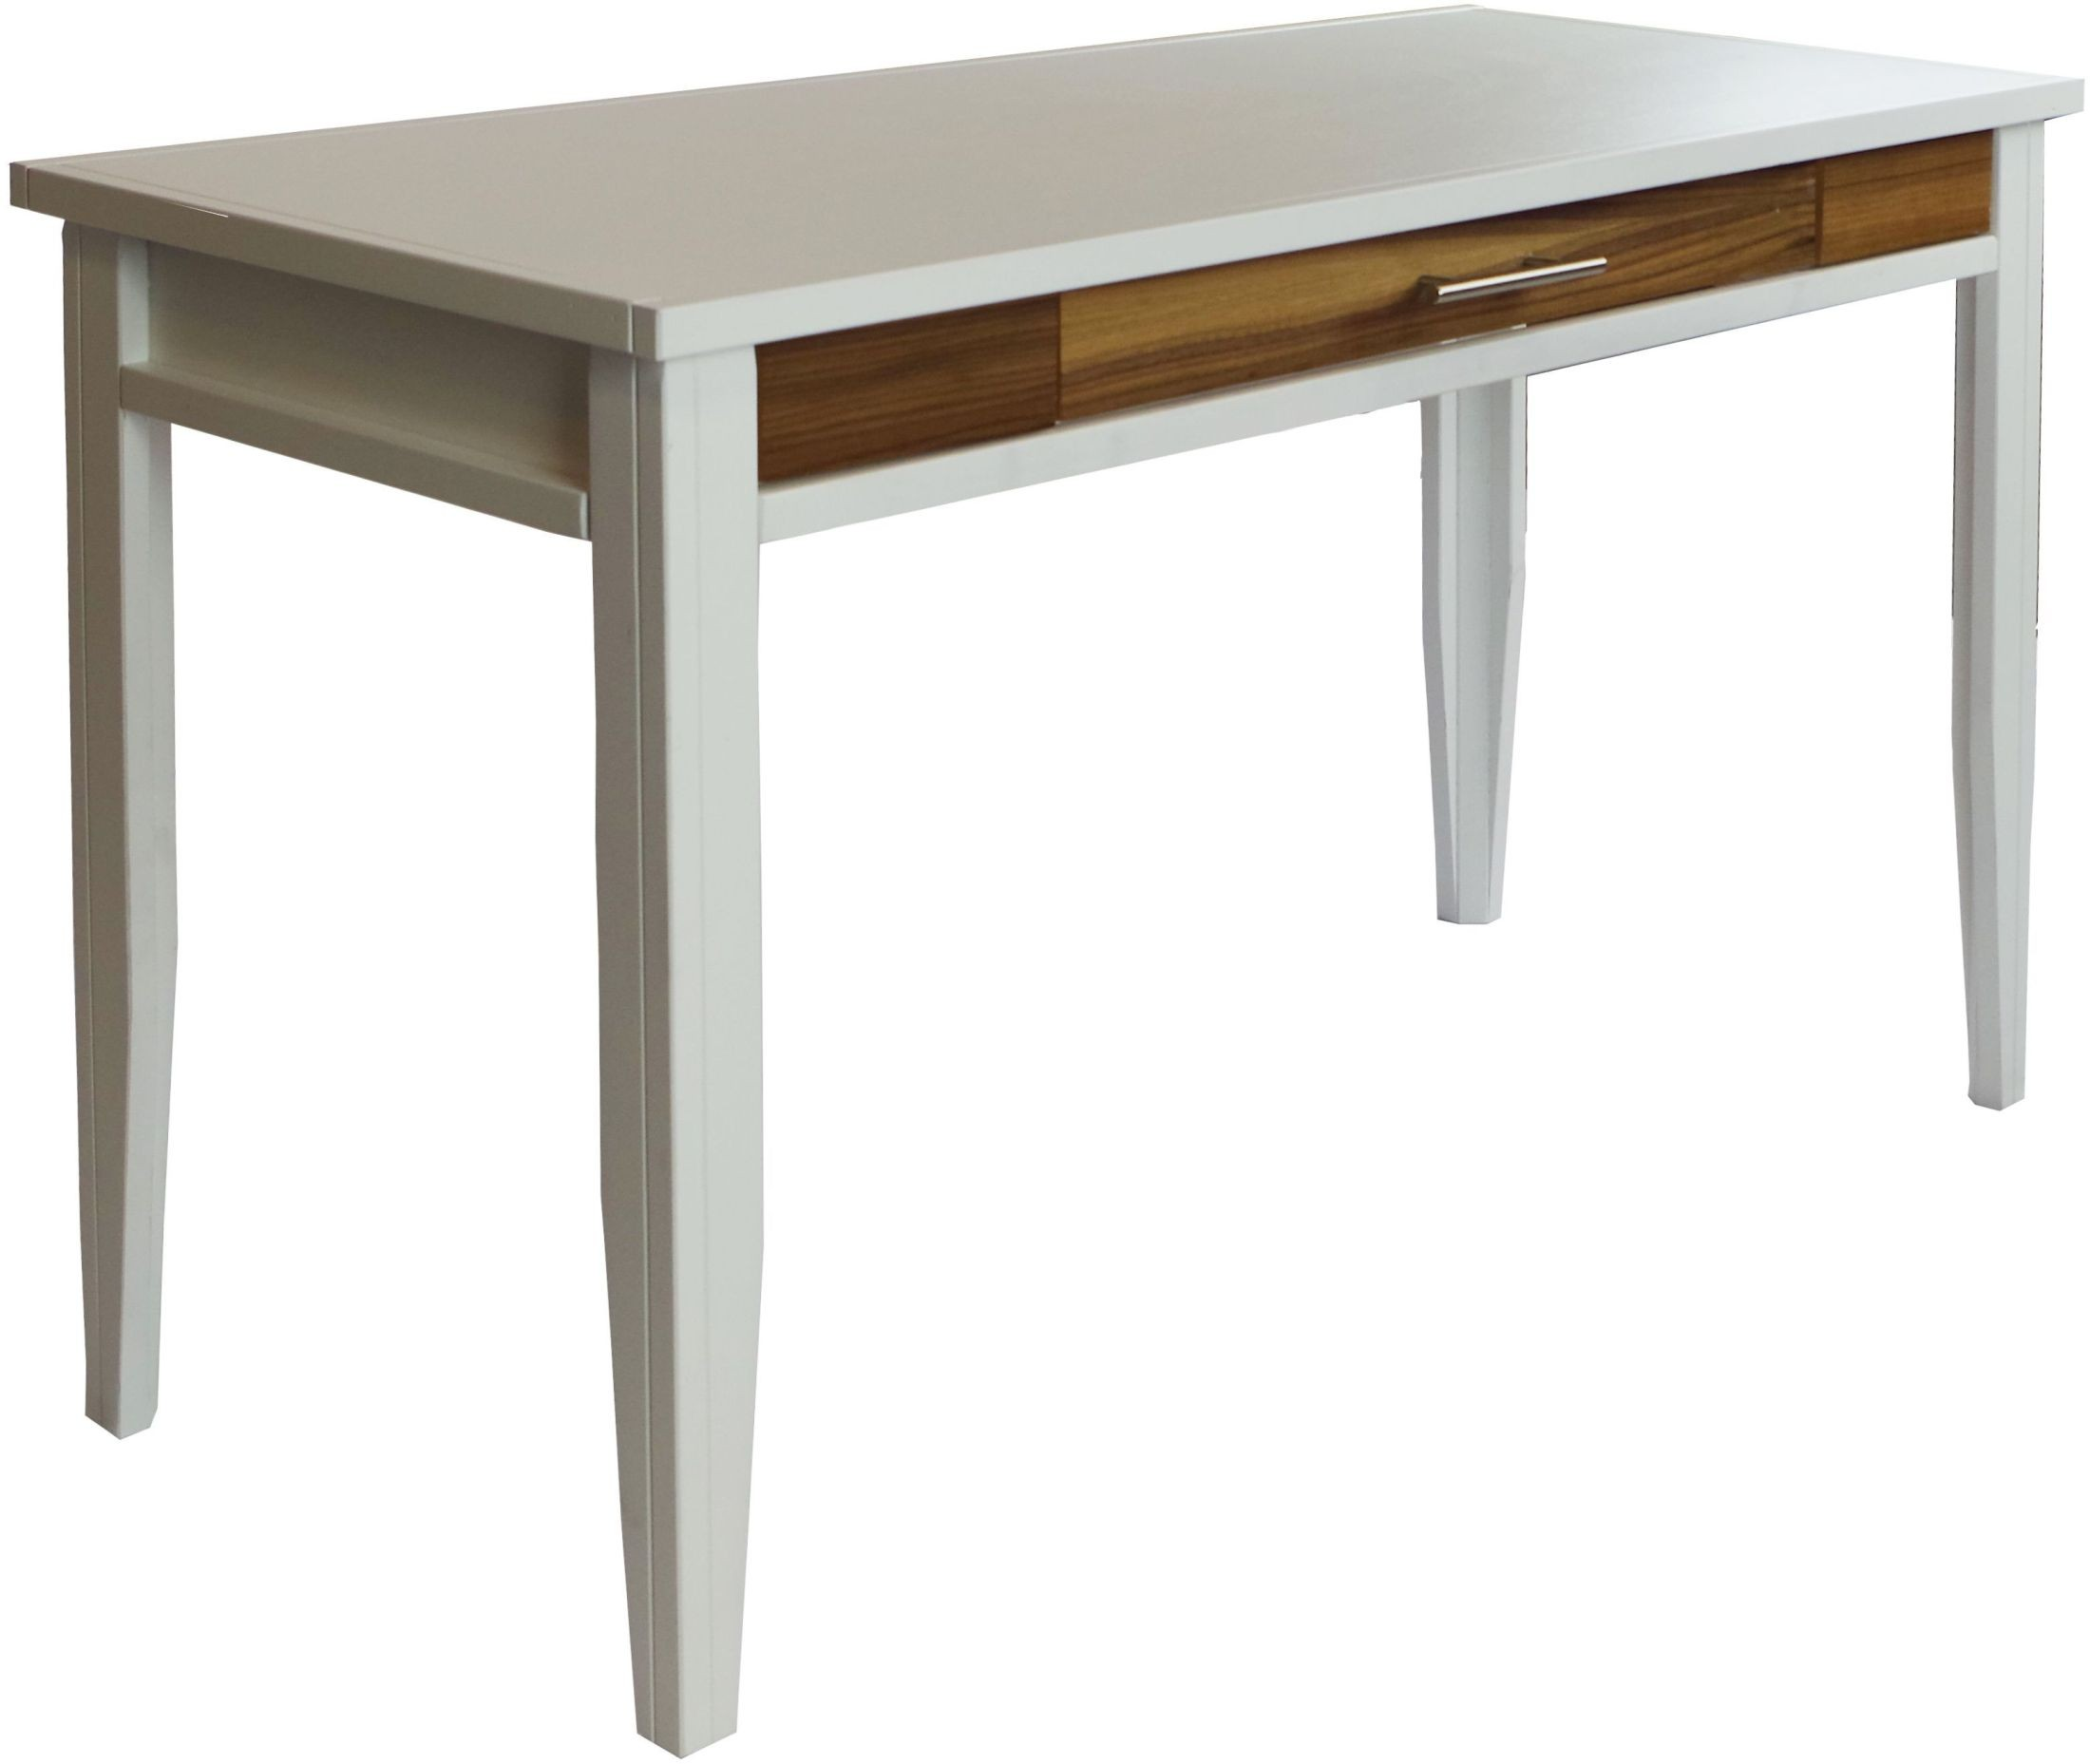 black writing table Ikea has lots of designs to create your own customized writing desk find a range of innovative table top and table leg combinations at great prices.